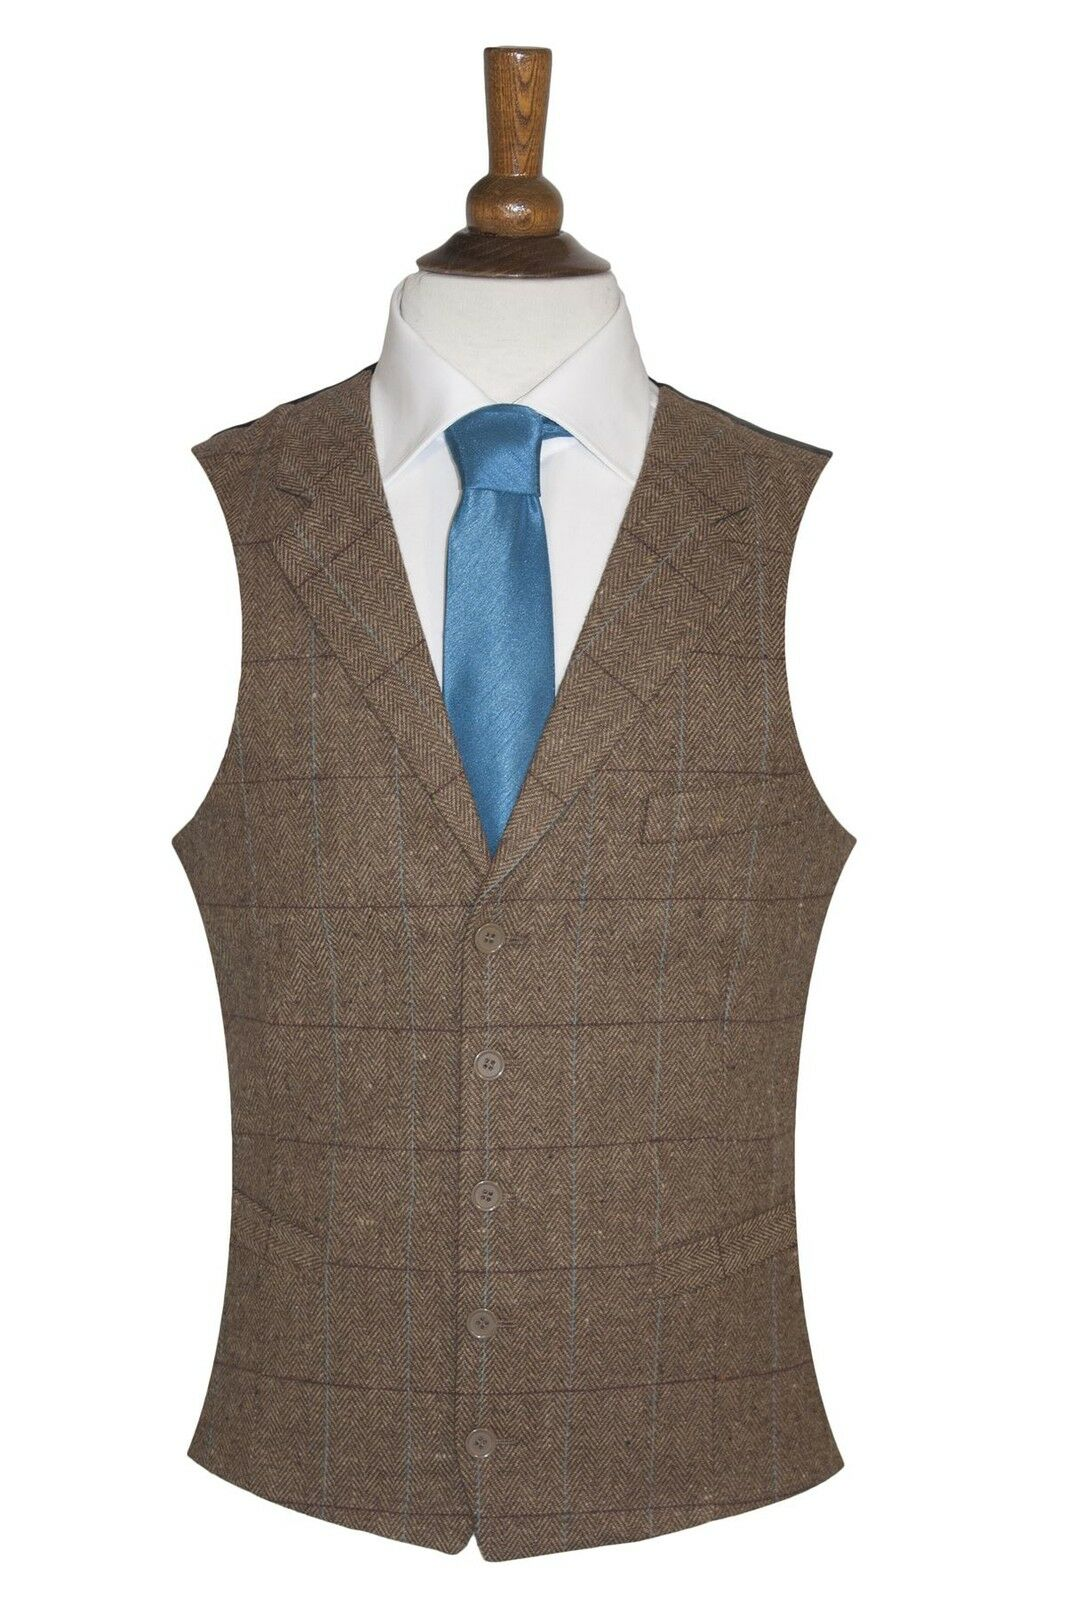 Men's Lloyd Attree & Smith Wool Handle Herringbone Waistcoat - Collared - Brown